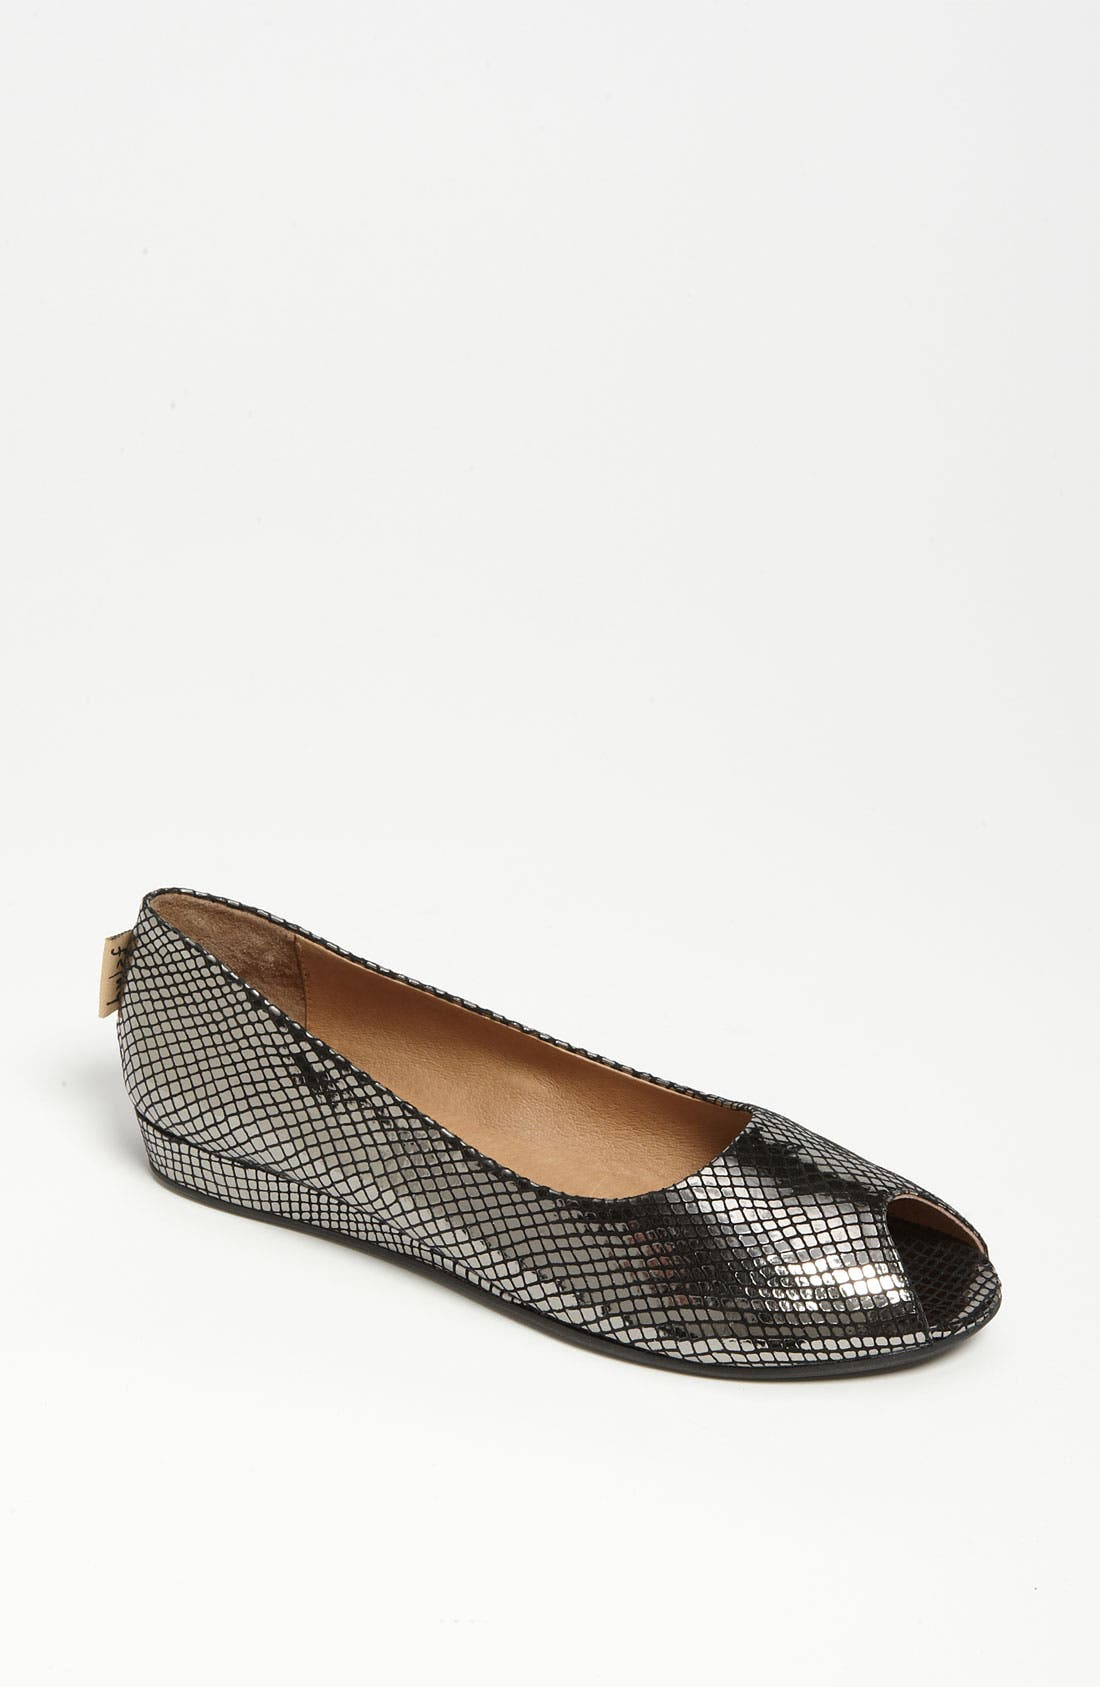 Alternate Image 1 Selected - French Sole 'Fortune' Flat